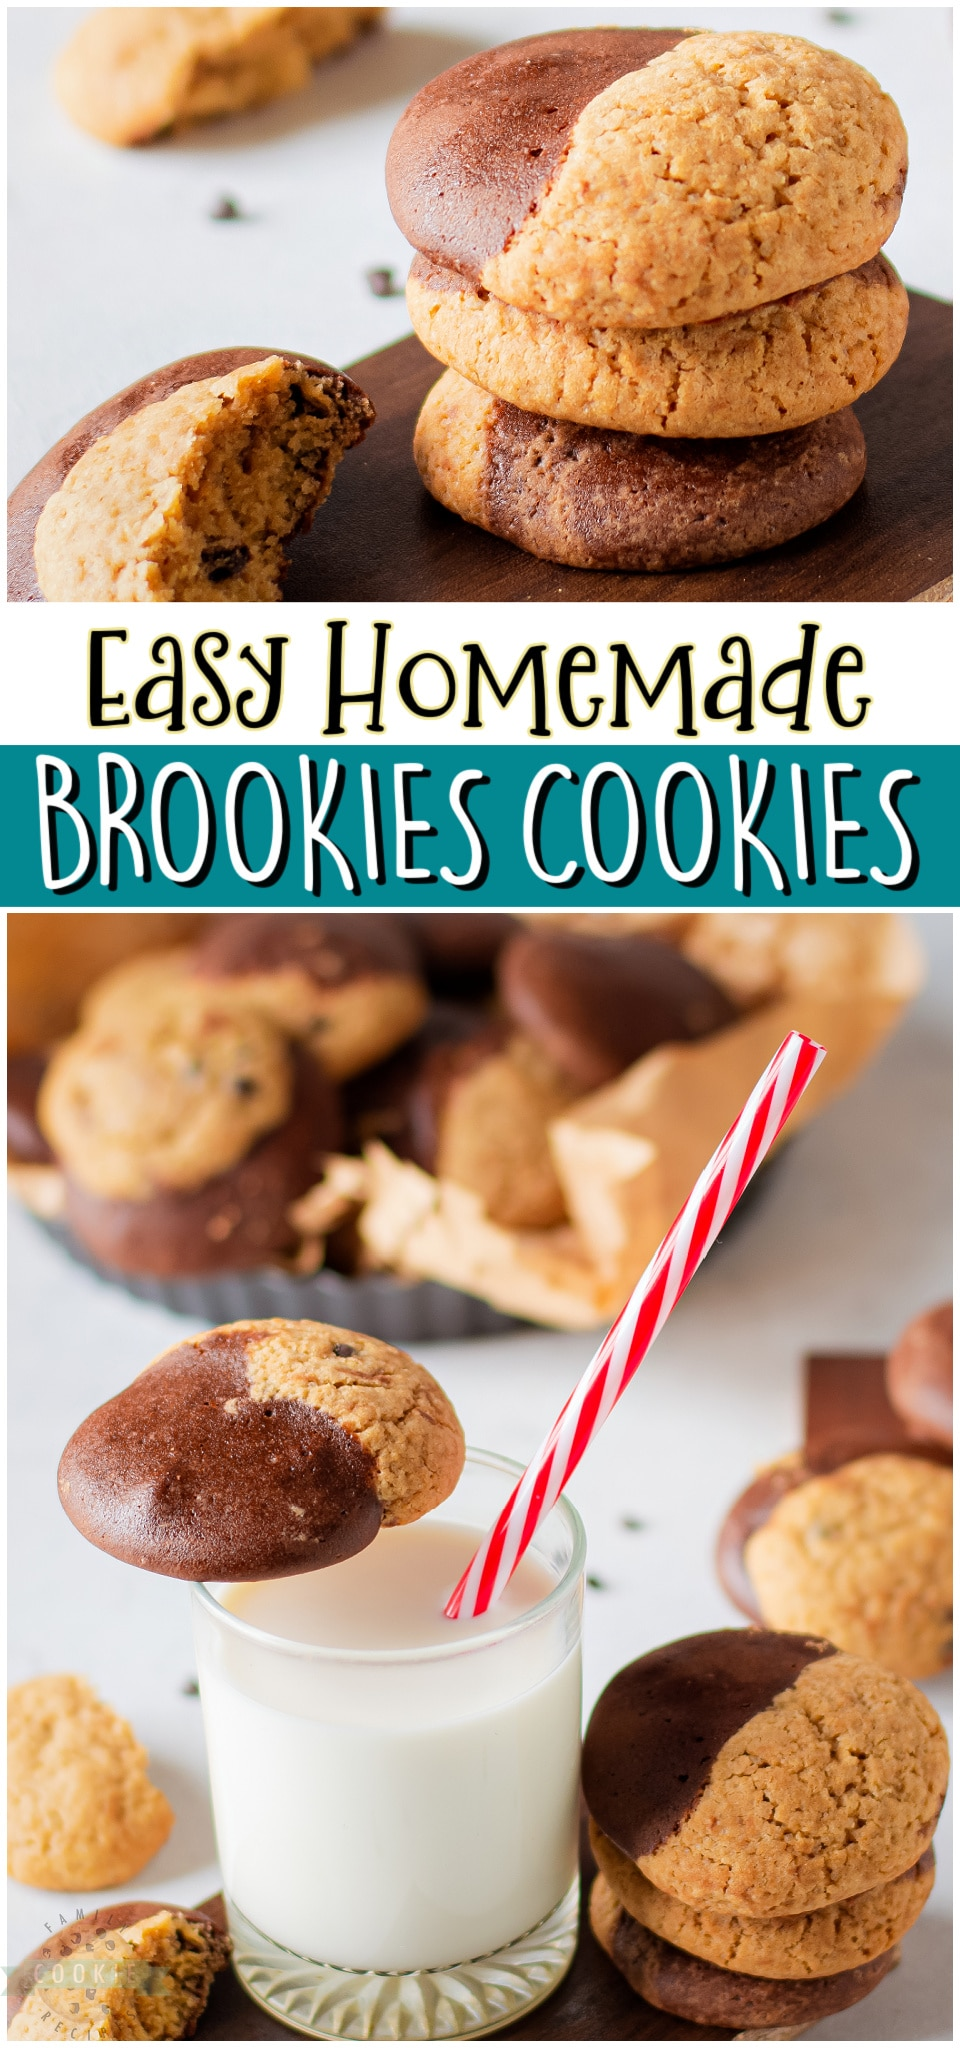 Brookies Cookies are the BEST combination of brownies & chocolate chip cookies! Homemade Brookies with great buttery, chocolate flavor for the perfect dessert! via @familycookierecipes